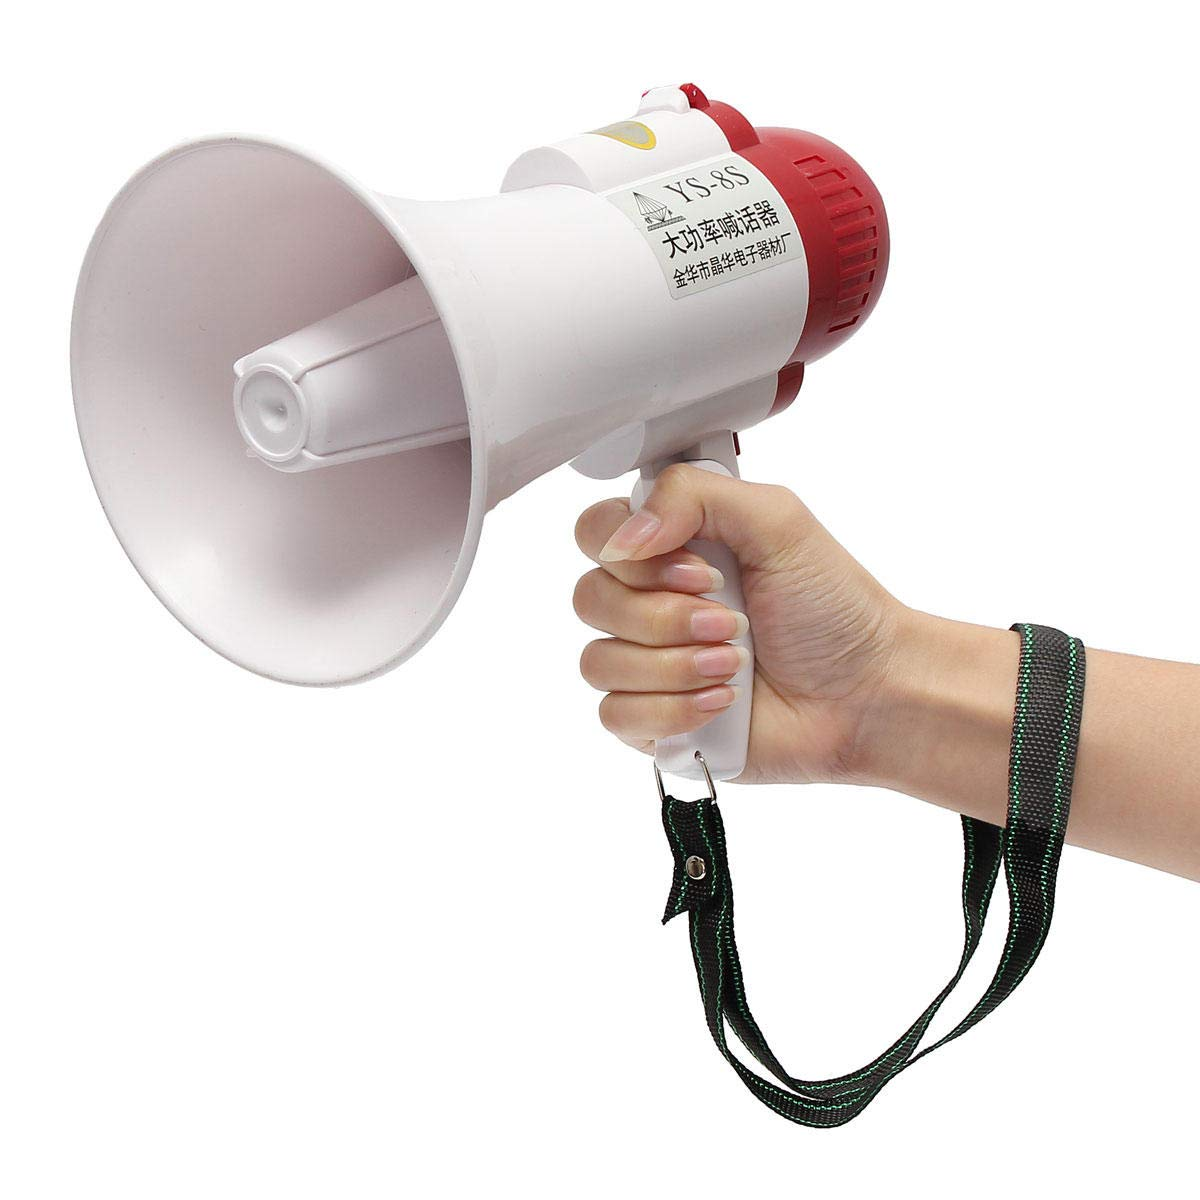 Portable Speaker Megaphone Strap Grip Loudspeaker Record Play with Siren Anddo